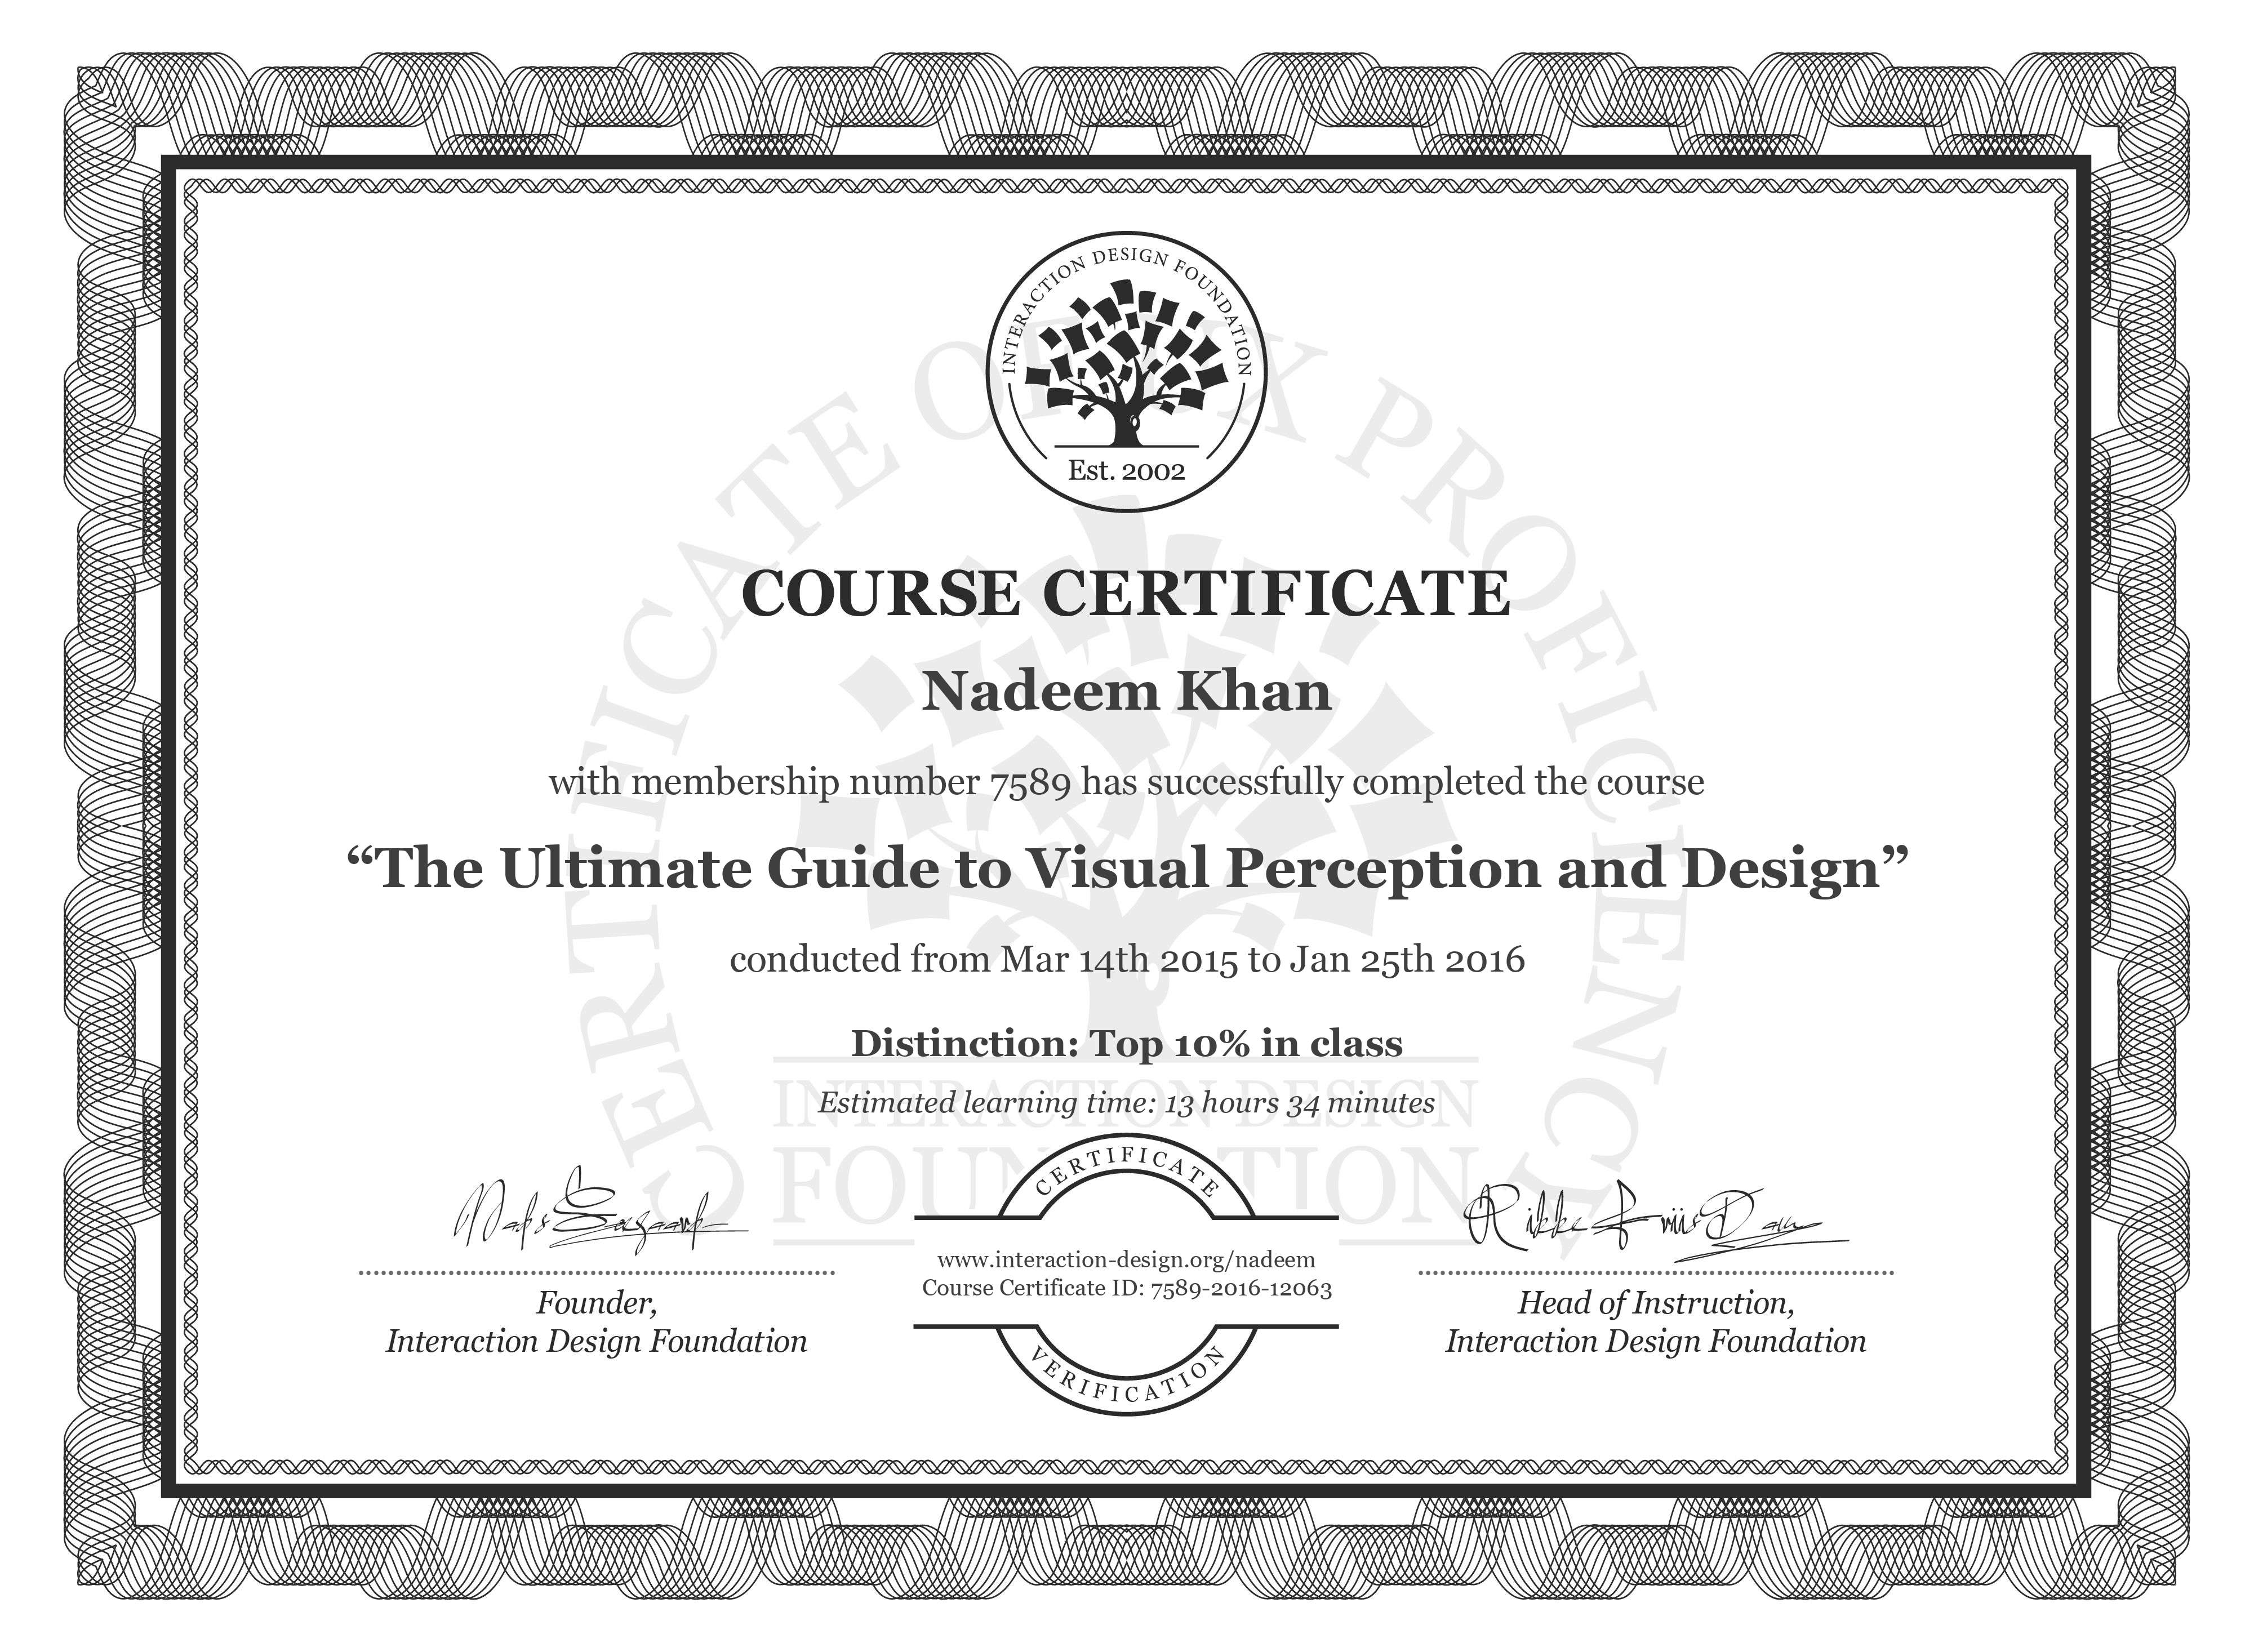 Nadeem Khan's Course Certificate: The Ultimate Guide to Visual Perception and Design